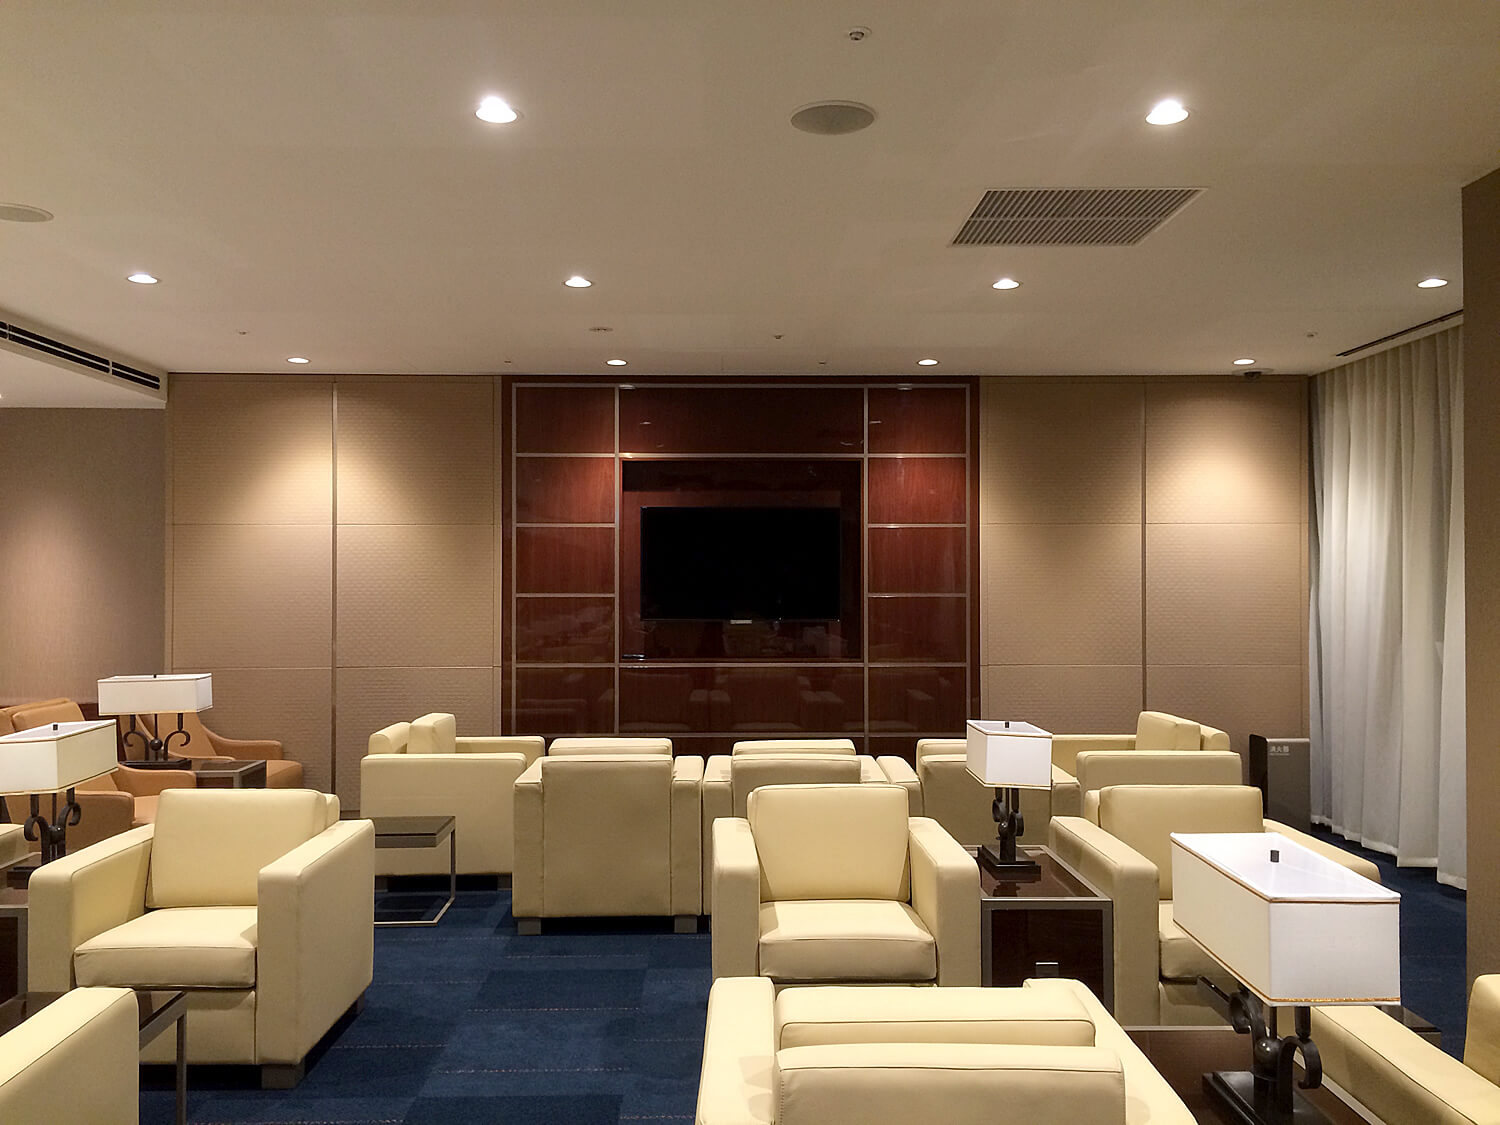 Emirates Narita Airport Lounge Project